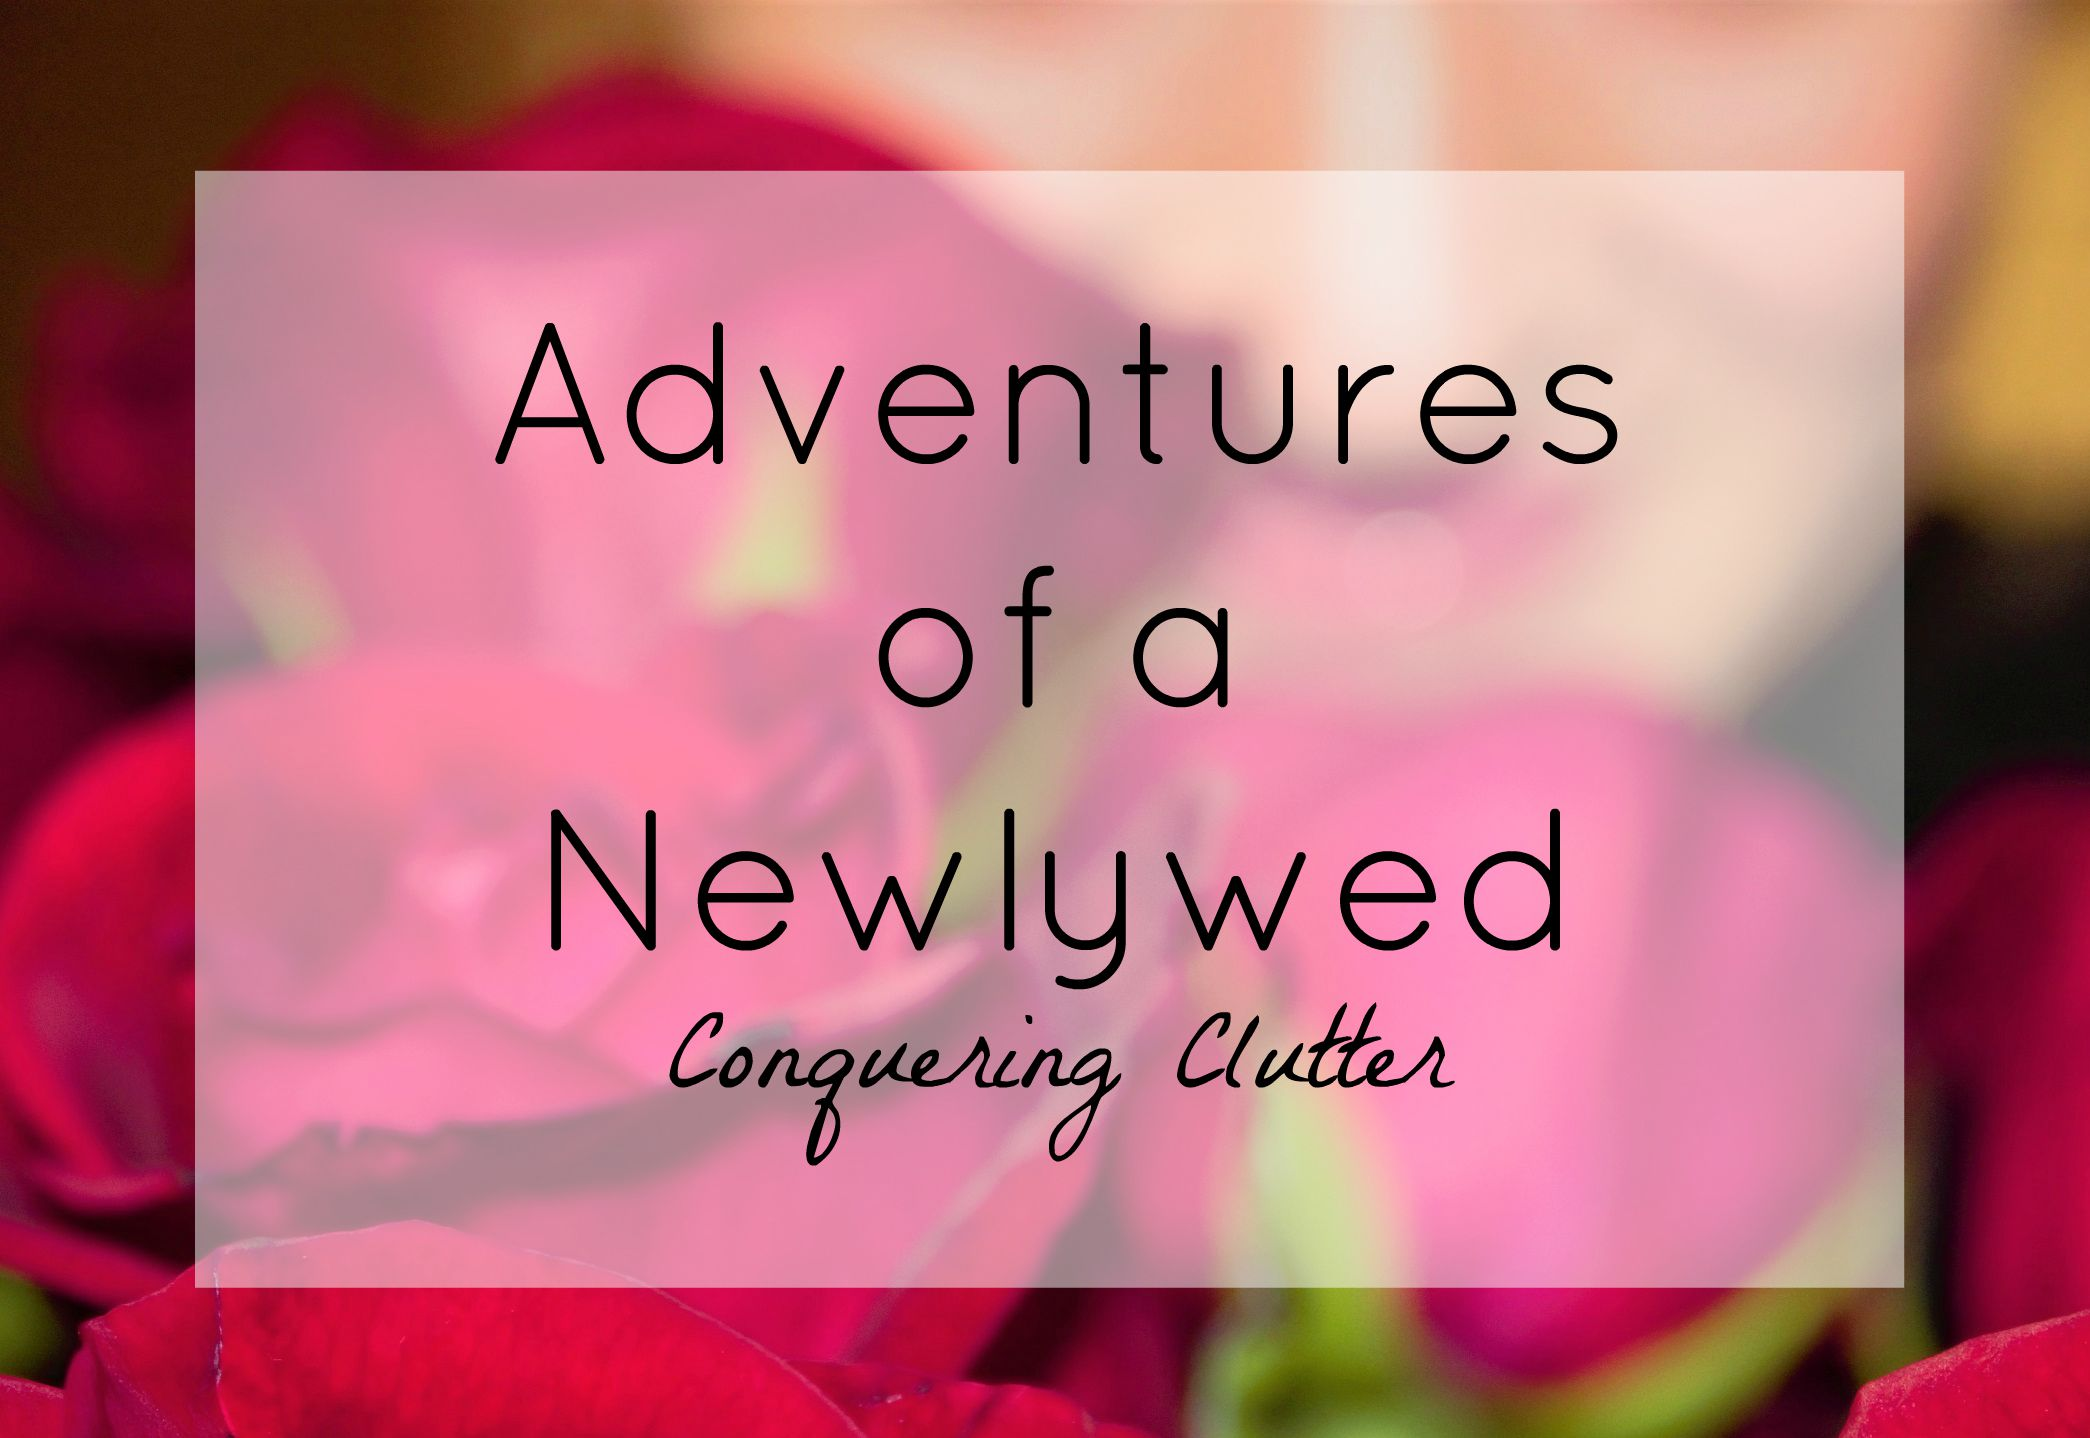 Adventures of a Newlywed // Conquering Clutter // Dandelion Pie